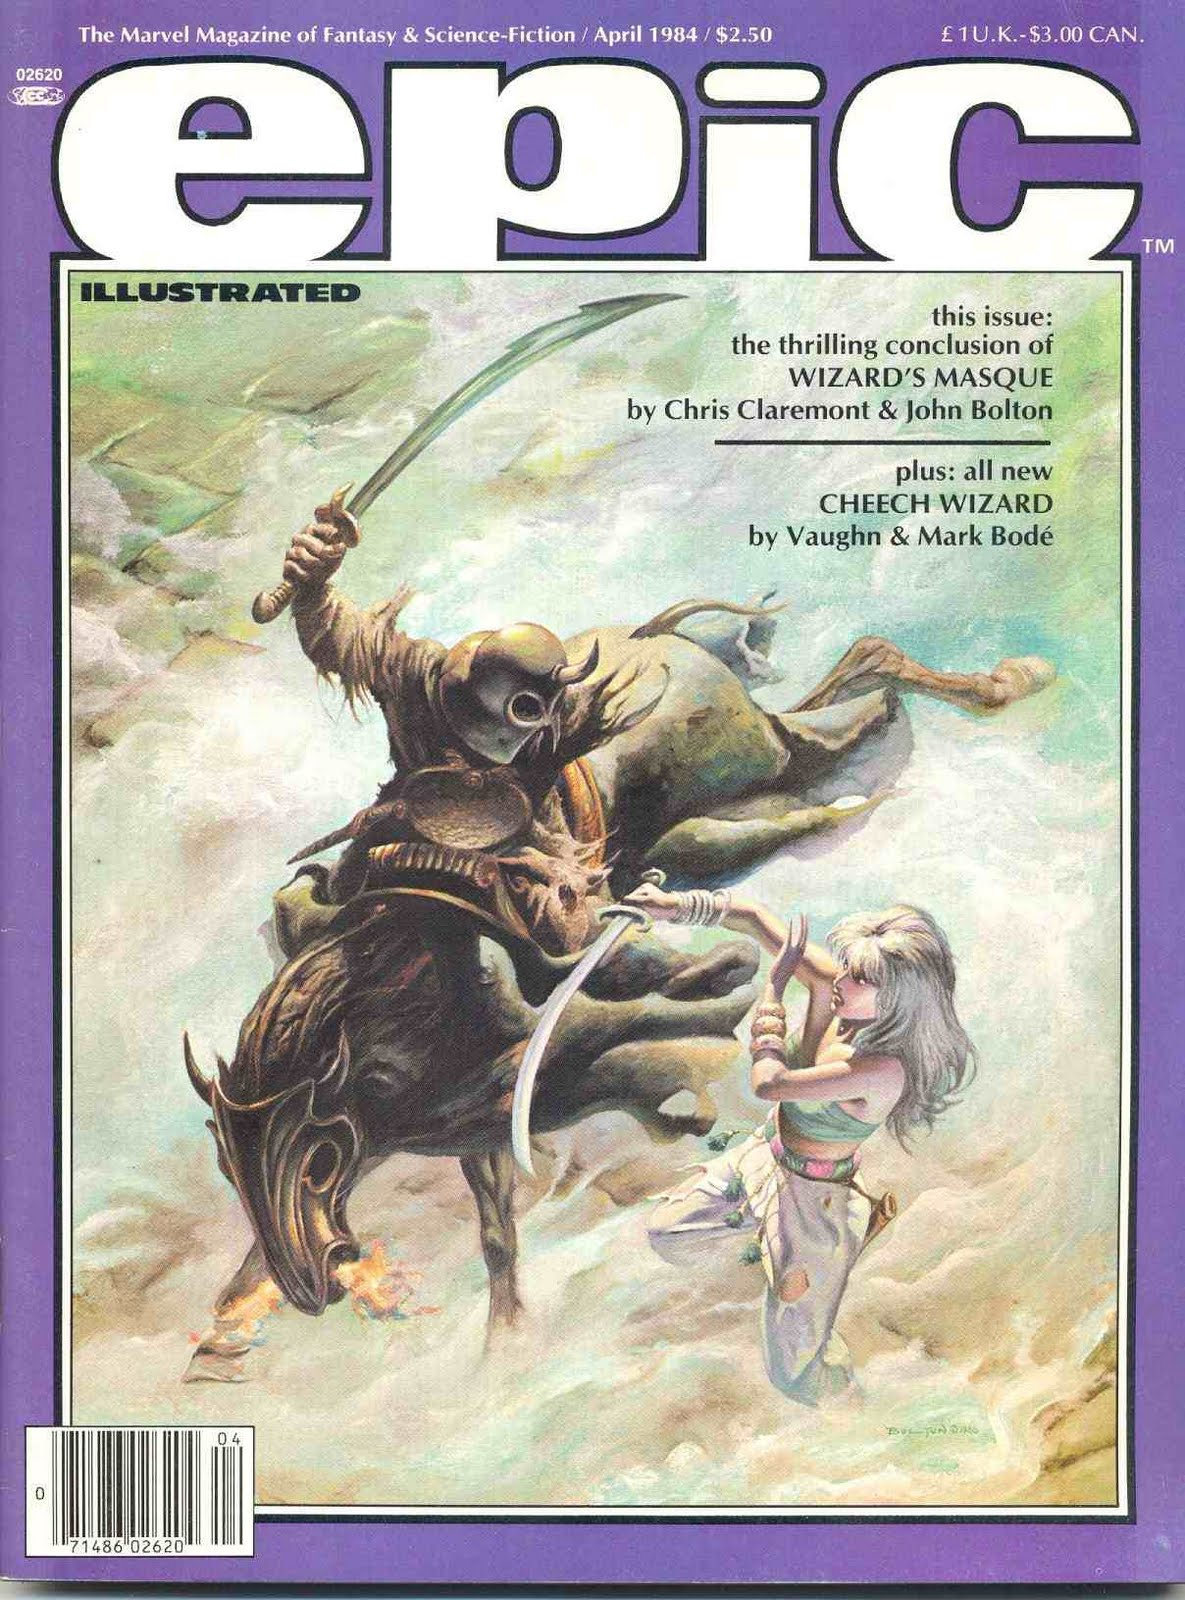 EPIC ILLUSTRATED - February 1983